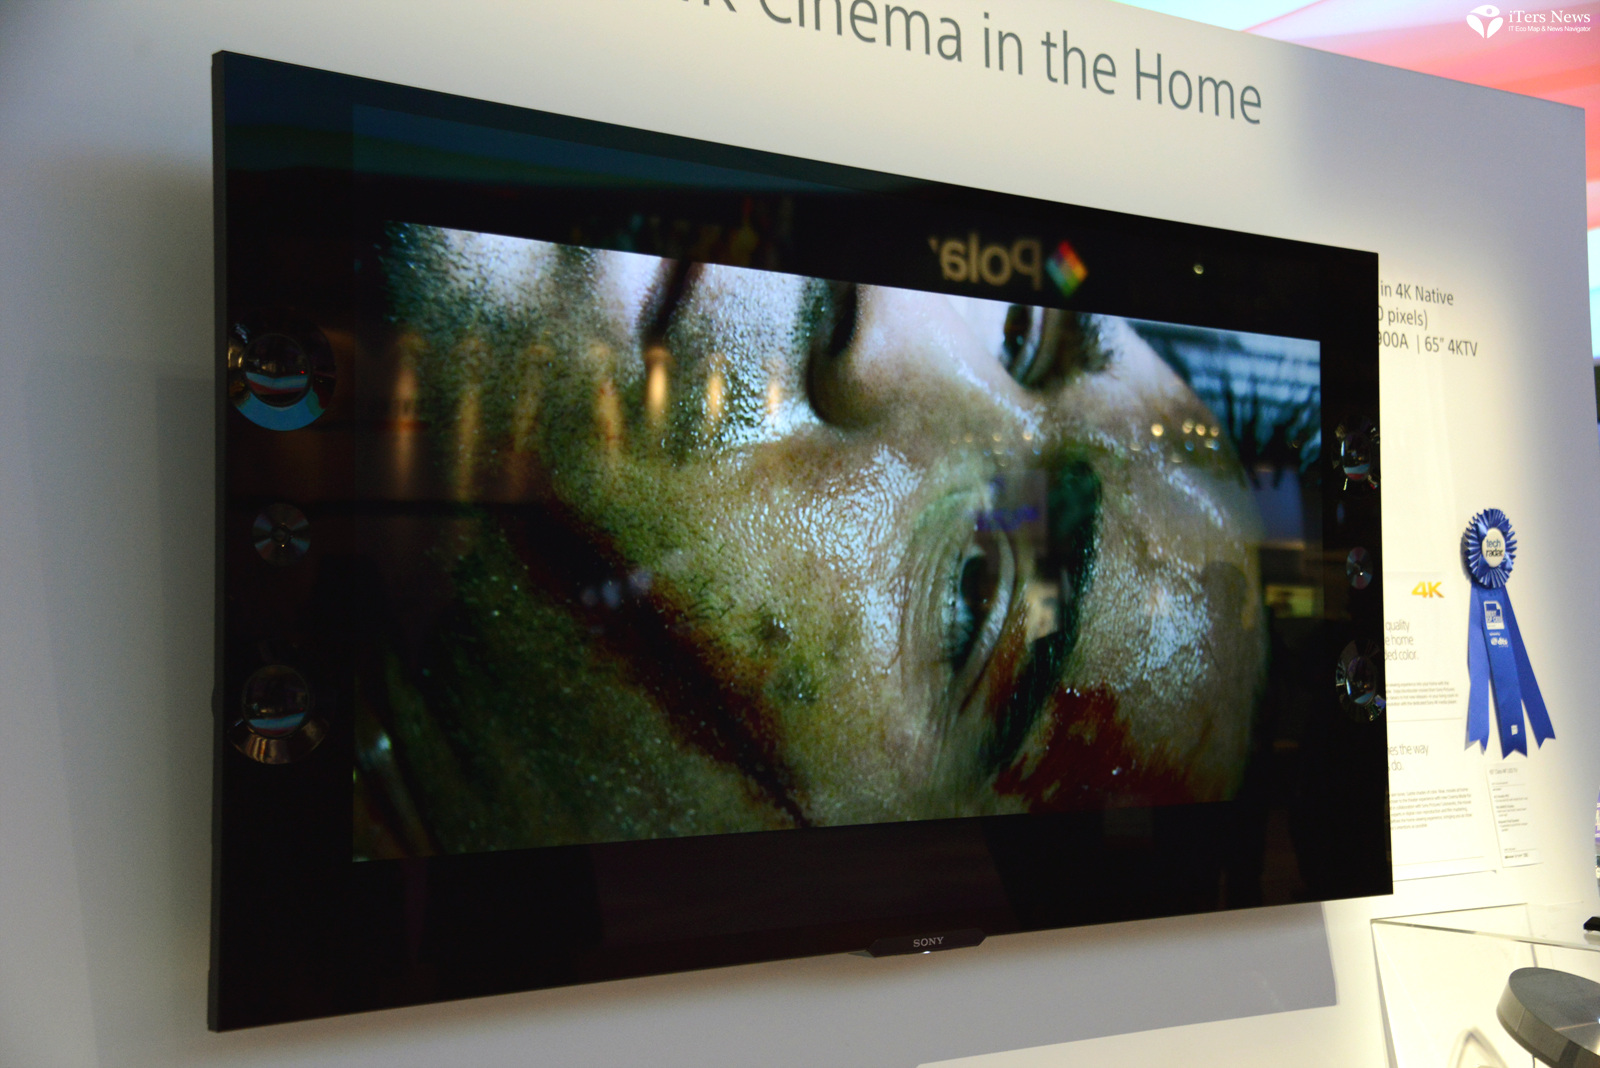 sony to sell 55 inch 65 inch 4k tvs on april 21 it eco map news